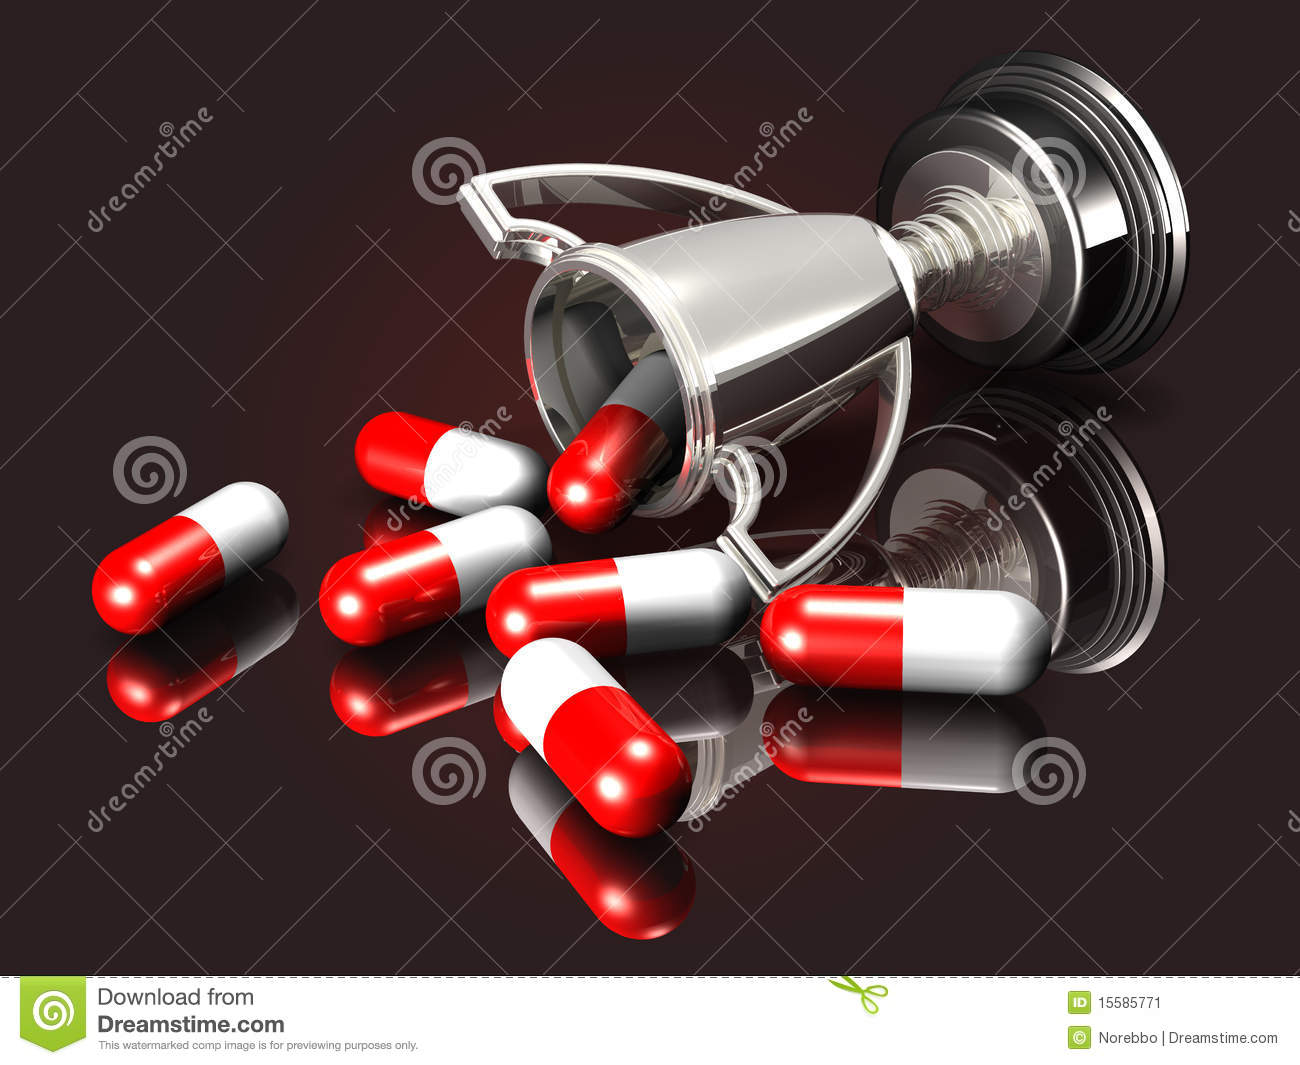 performance enhancing drugs in sports now a silent epidemic Sponsor oakley turned a blind eye to lance armstrong's doping in a hospital that he had taken performance-enhancing drugs silent epidemic of elder.